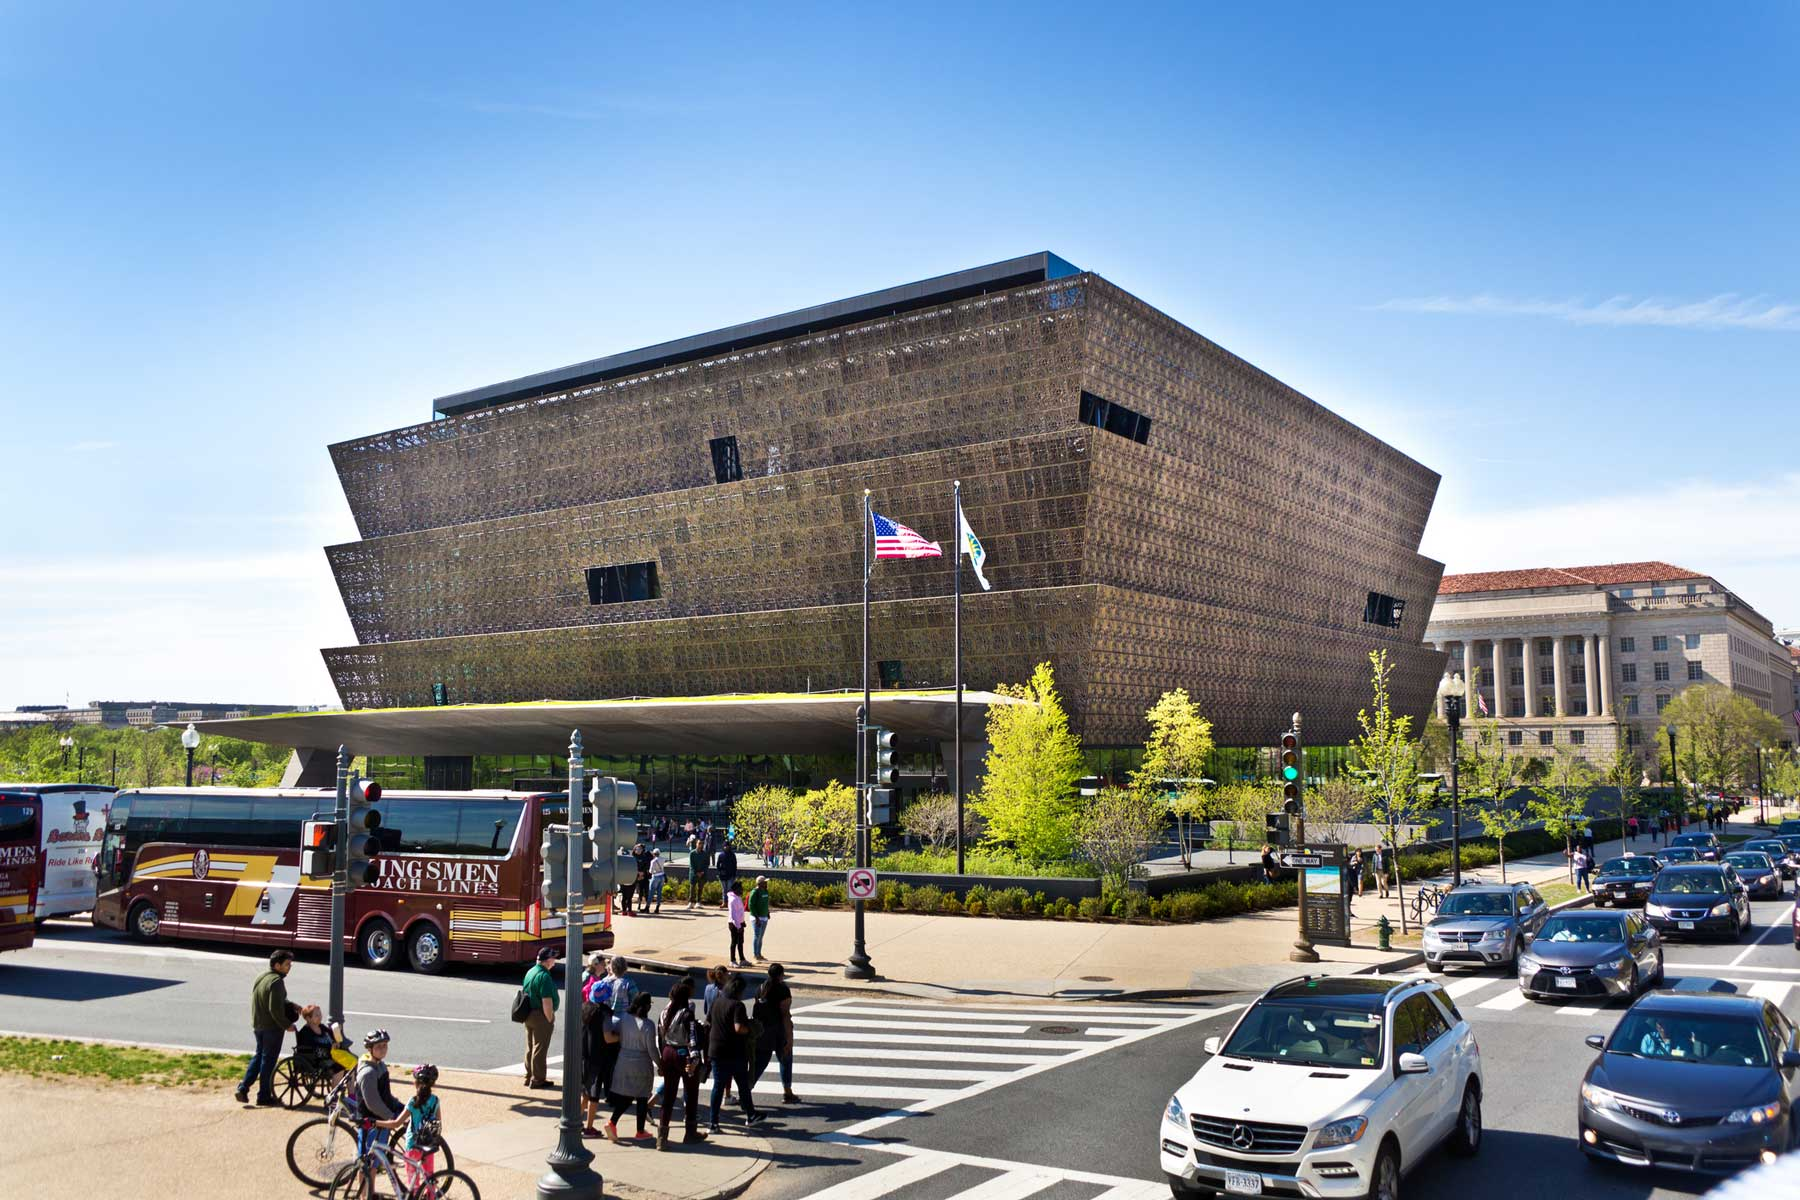 National Museum of African American History and Culture Building in Washington, D.C.